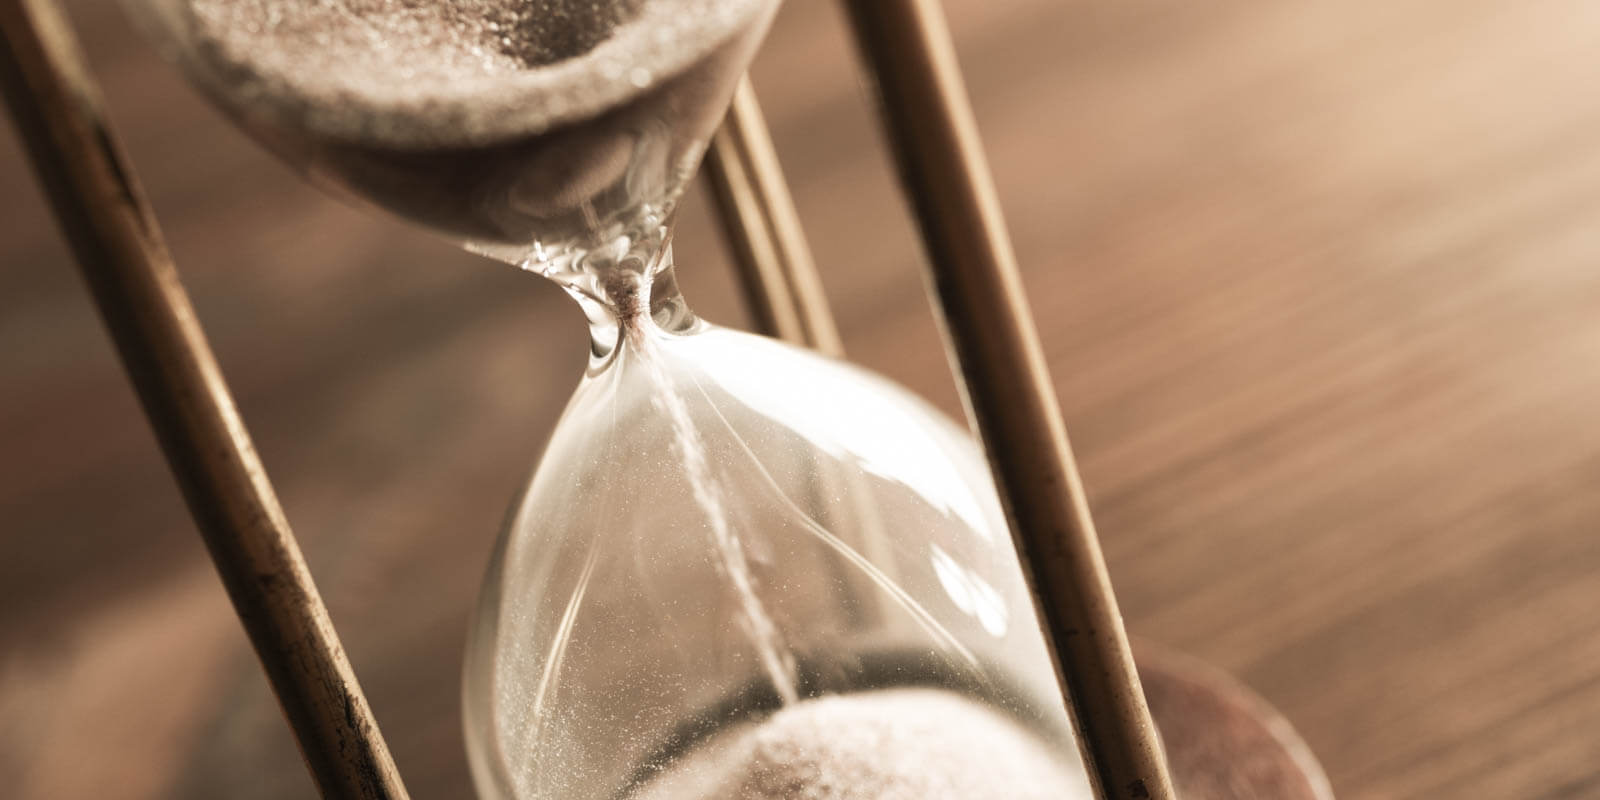 Sand runs through an hourglass to indicate the elapsed time.